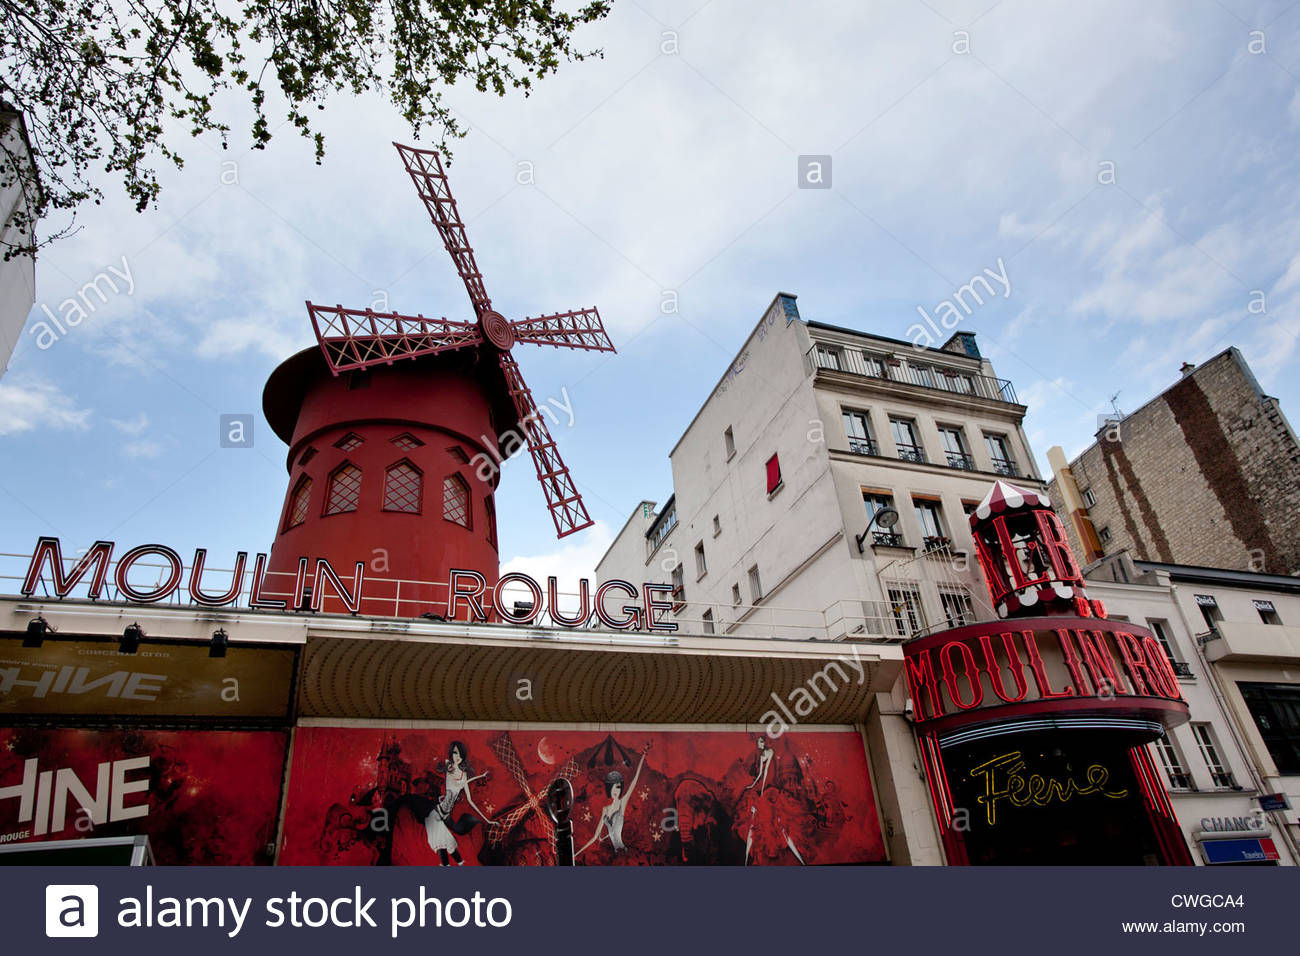 The Moulin Rouge, Paris, France - Stock Image